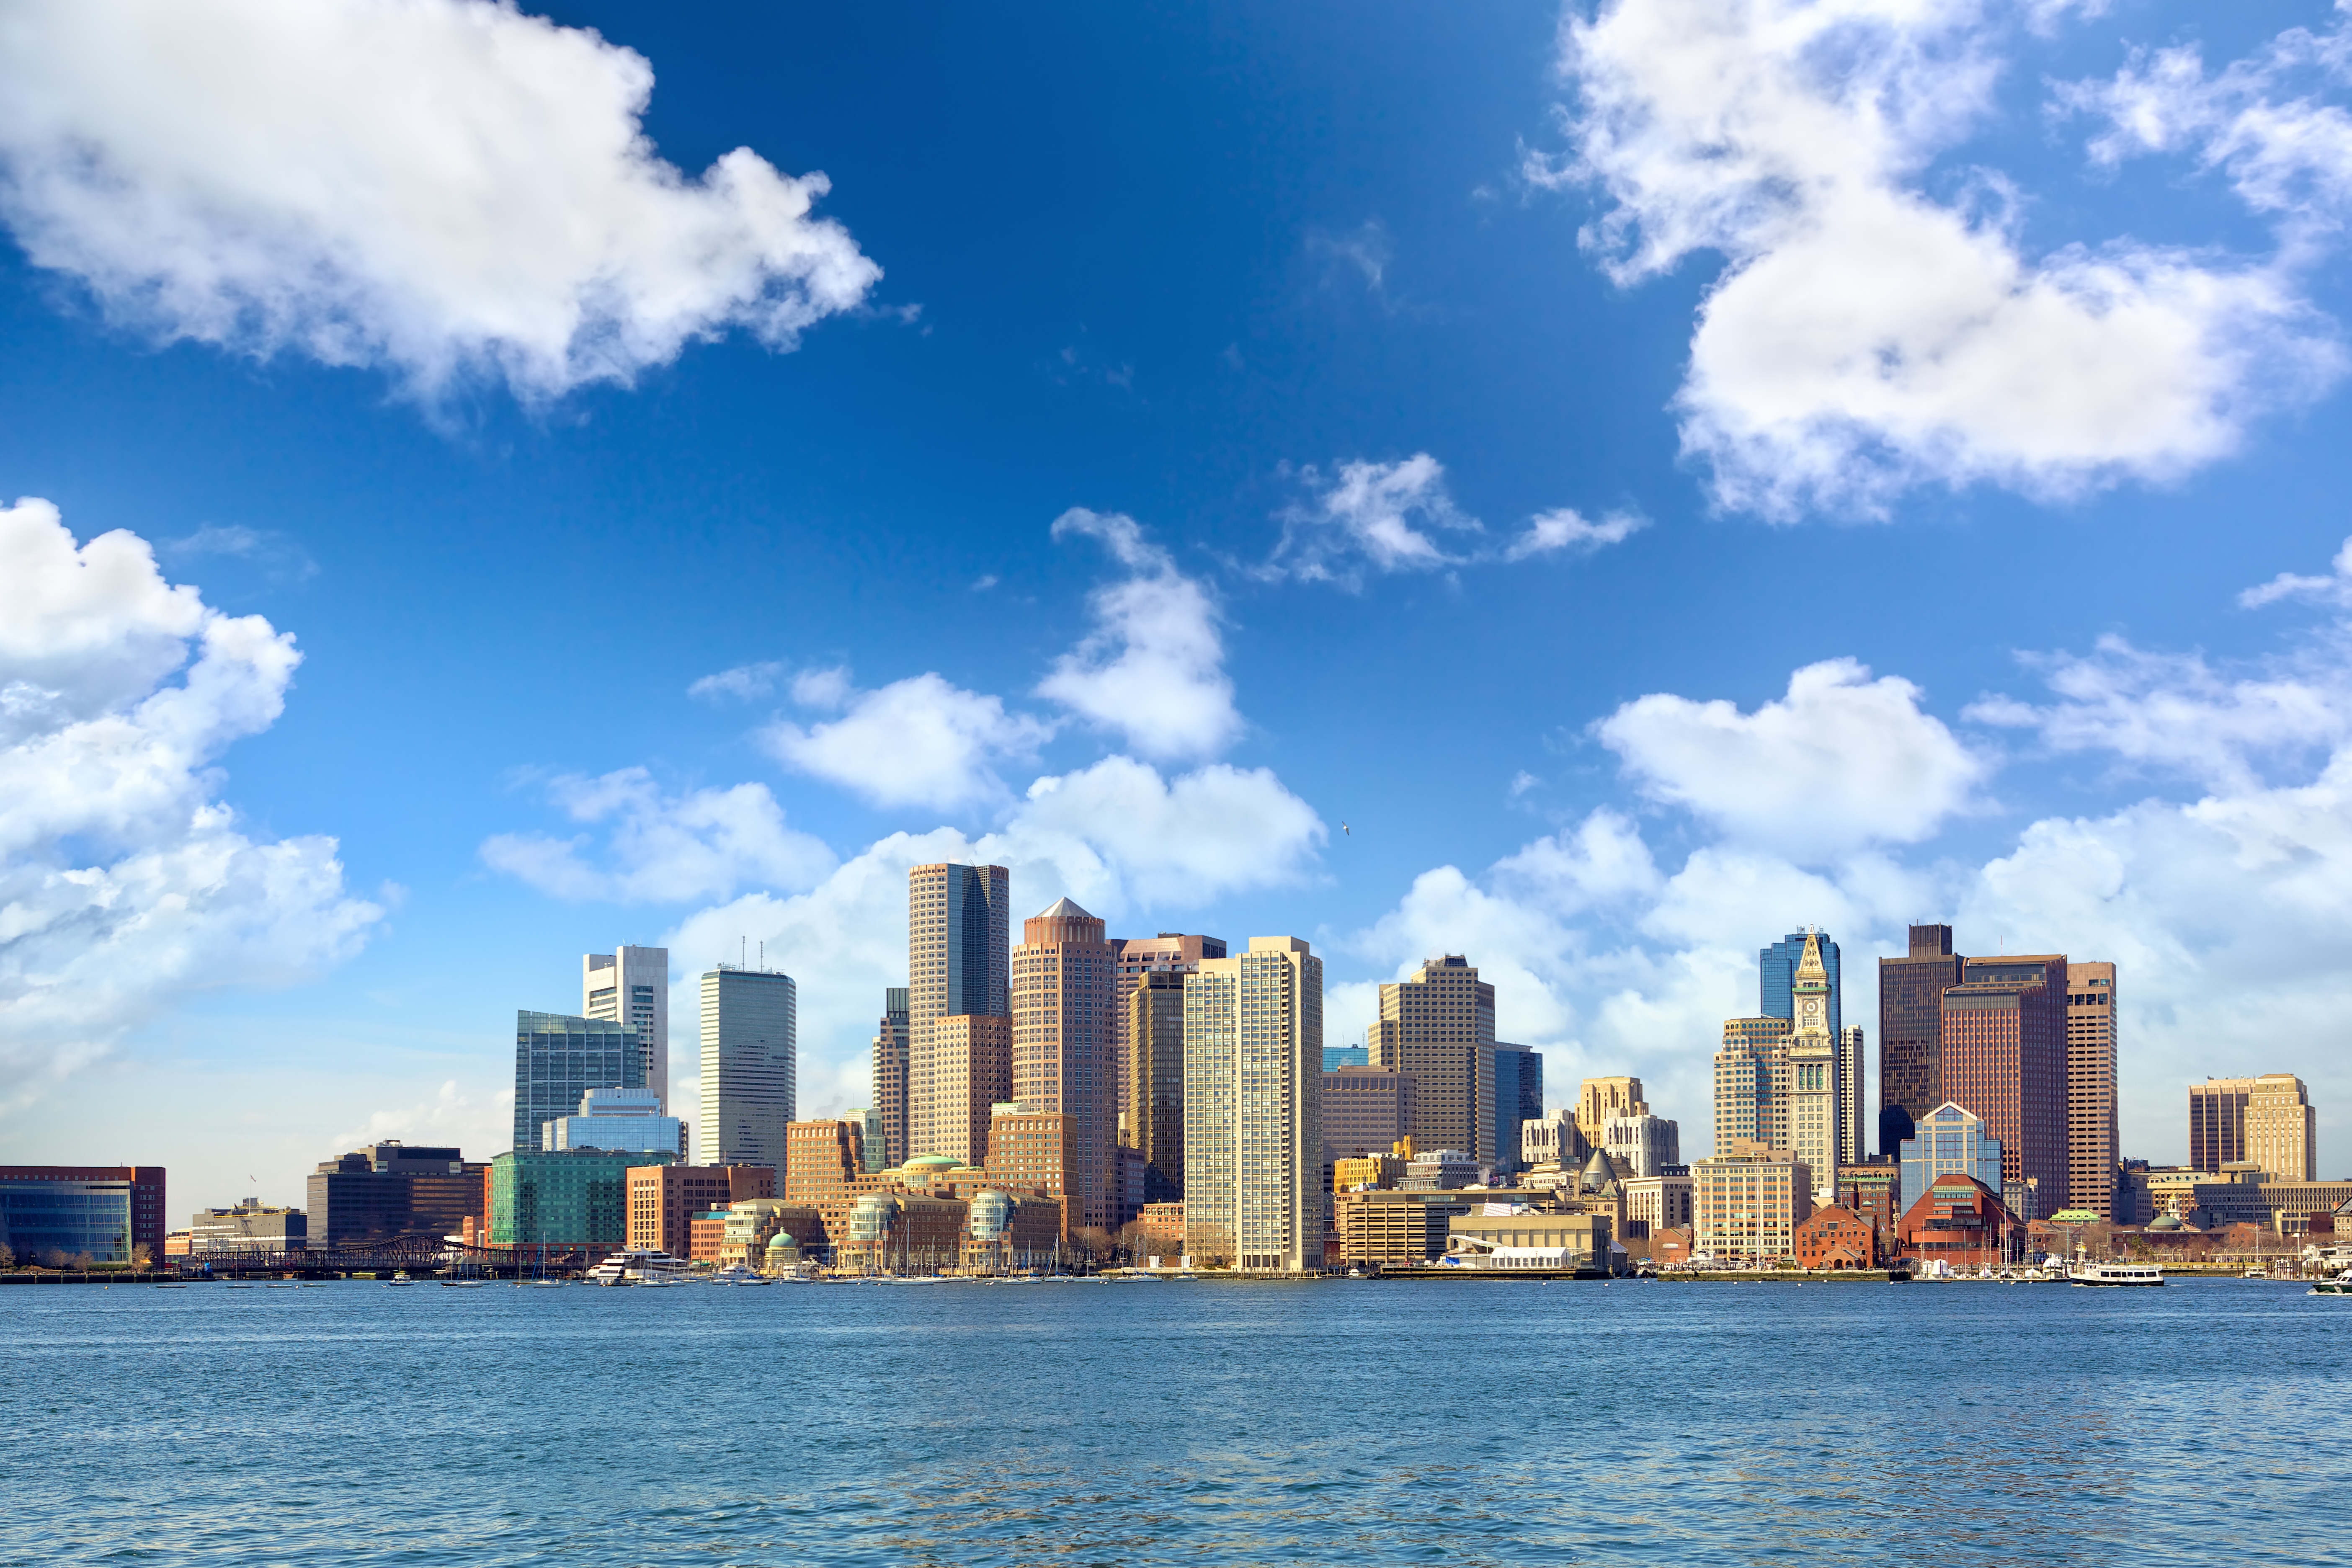 The Impacts of COVID-19 on Housing in Boston